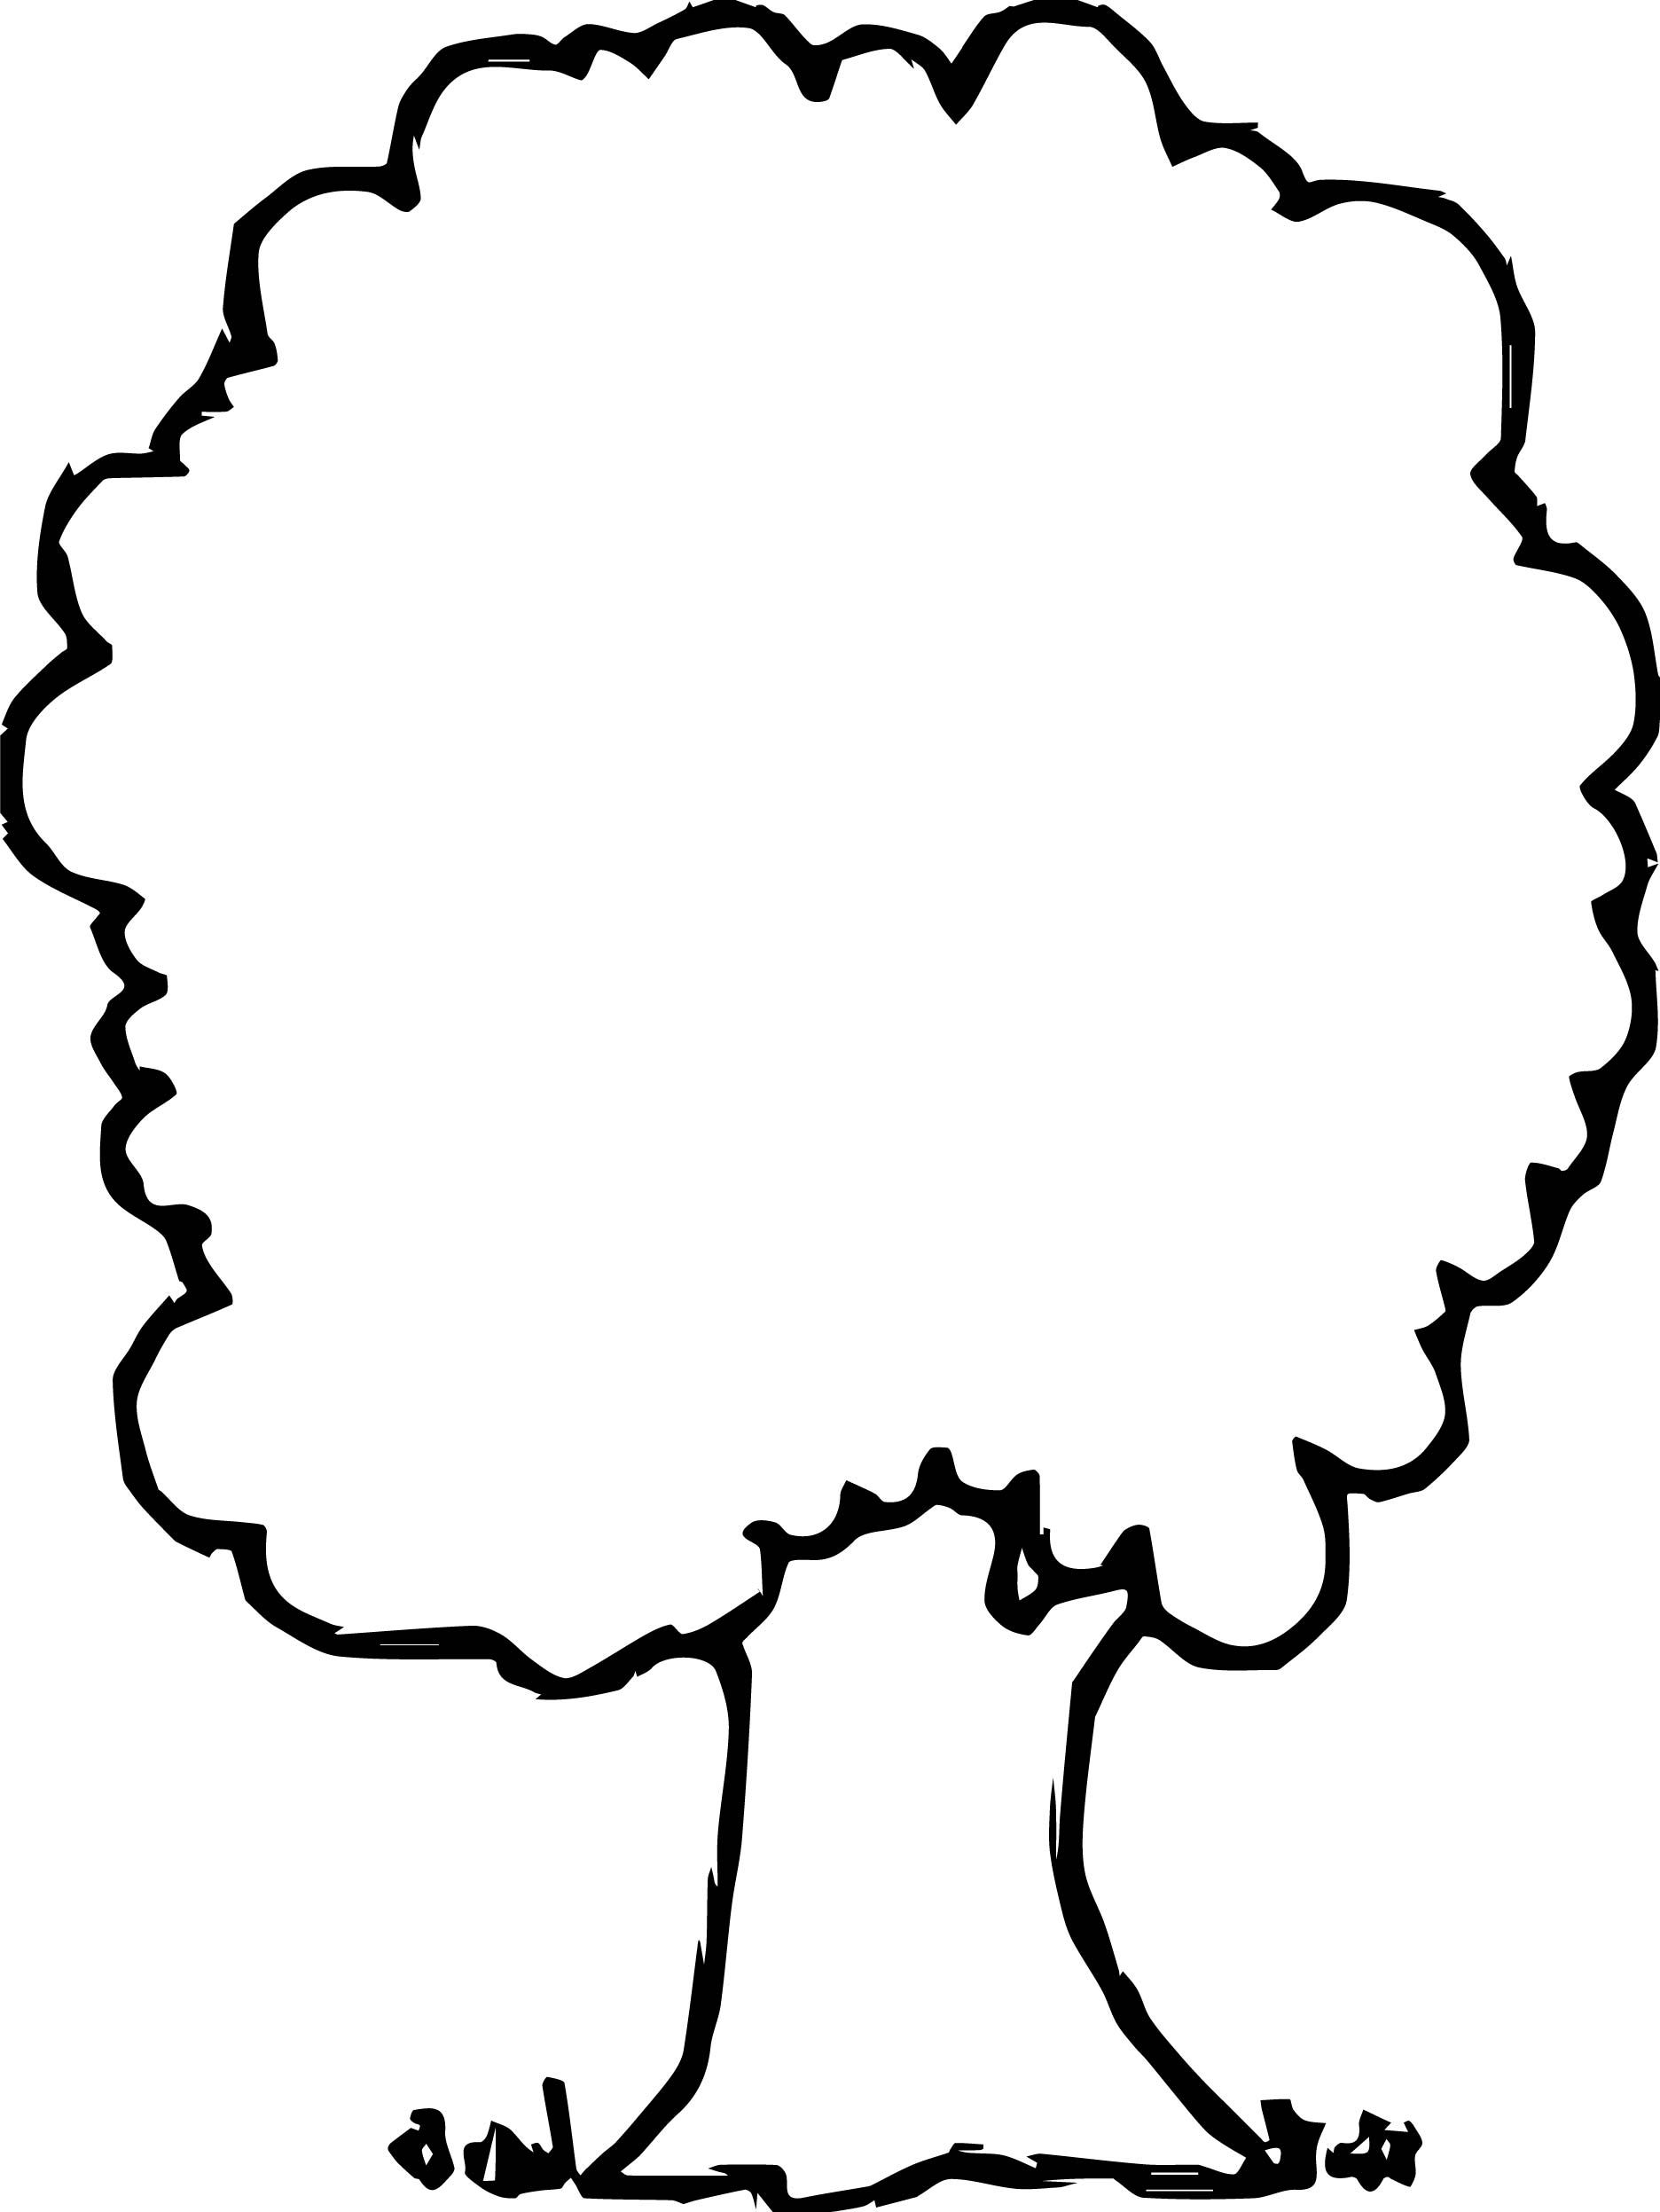 Nice Simple Empty Apple Tree Coloring Page Tree Coloring Page Christmas Tree Coloring Page Fruit Coloring Pages